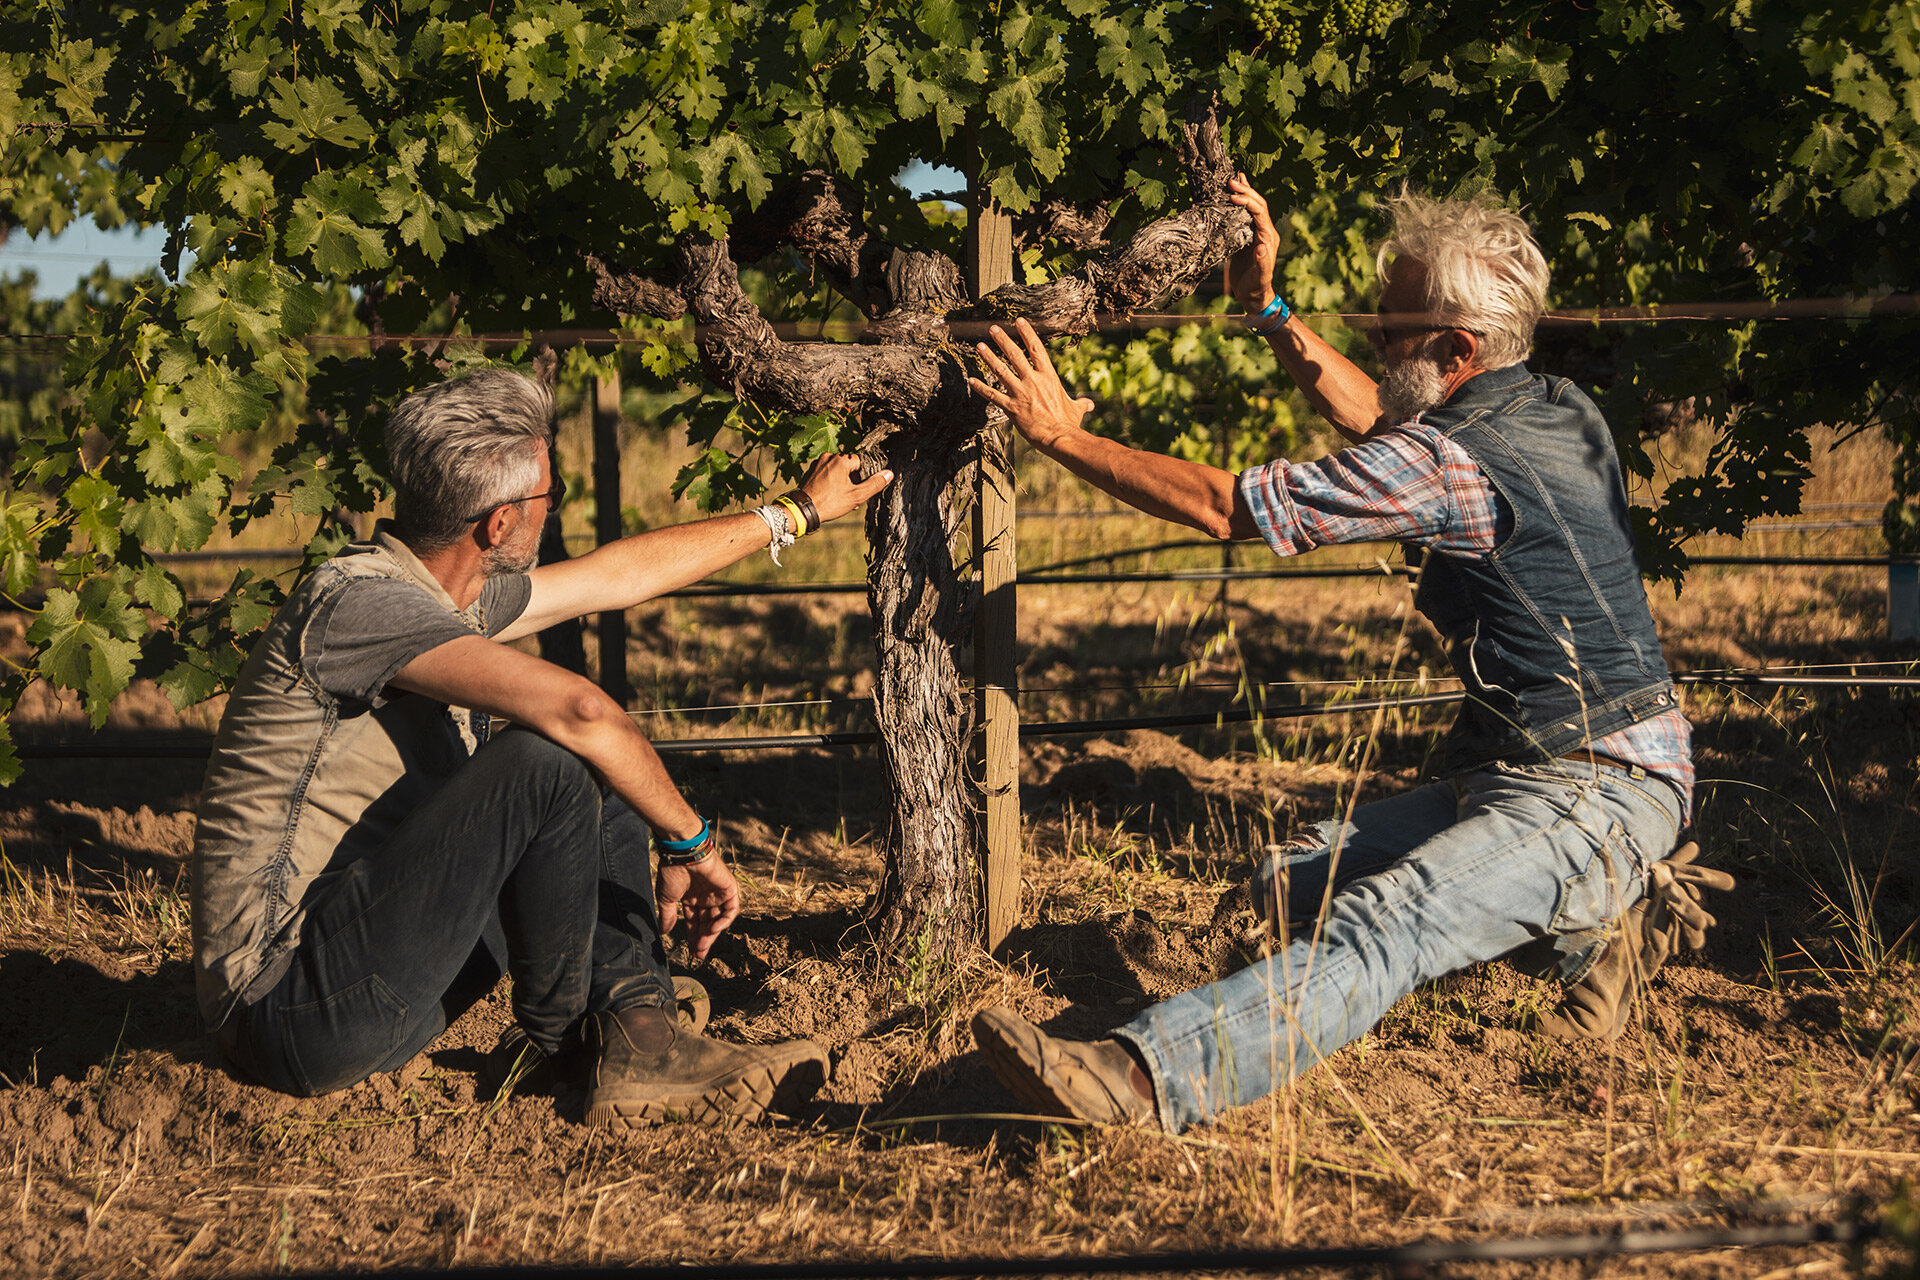 Marco Simonit and Massimo Giudici, Master Vine Pruners in Napa Valley